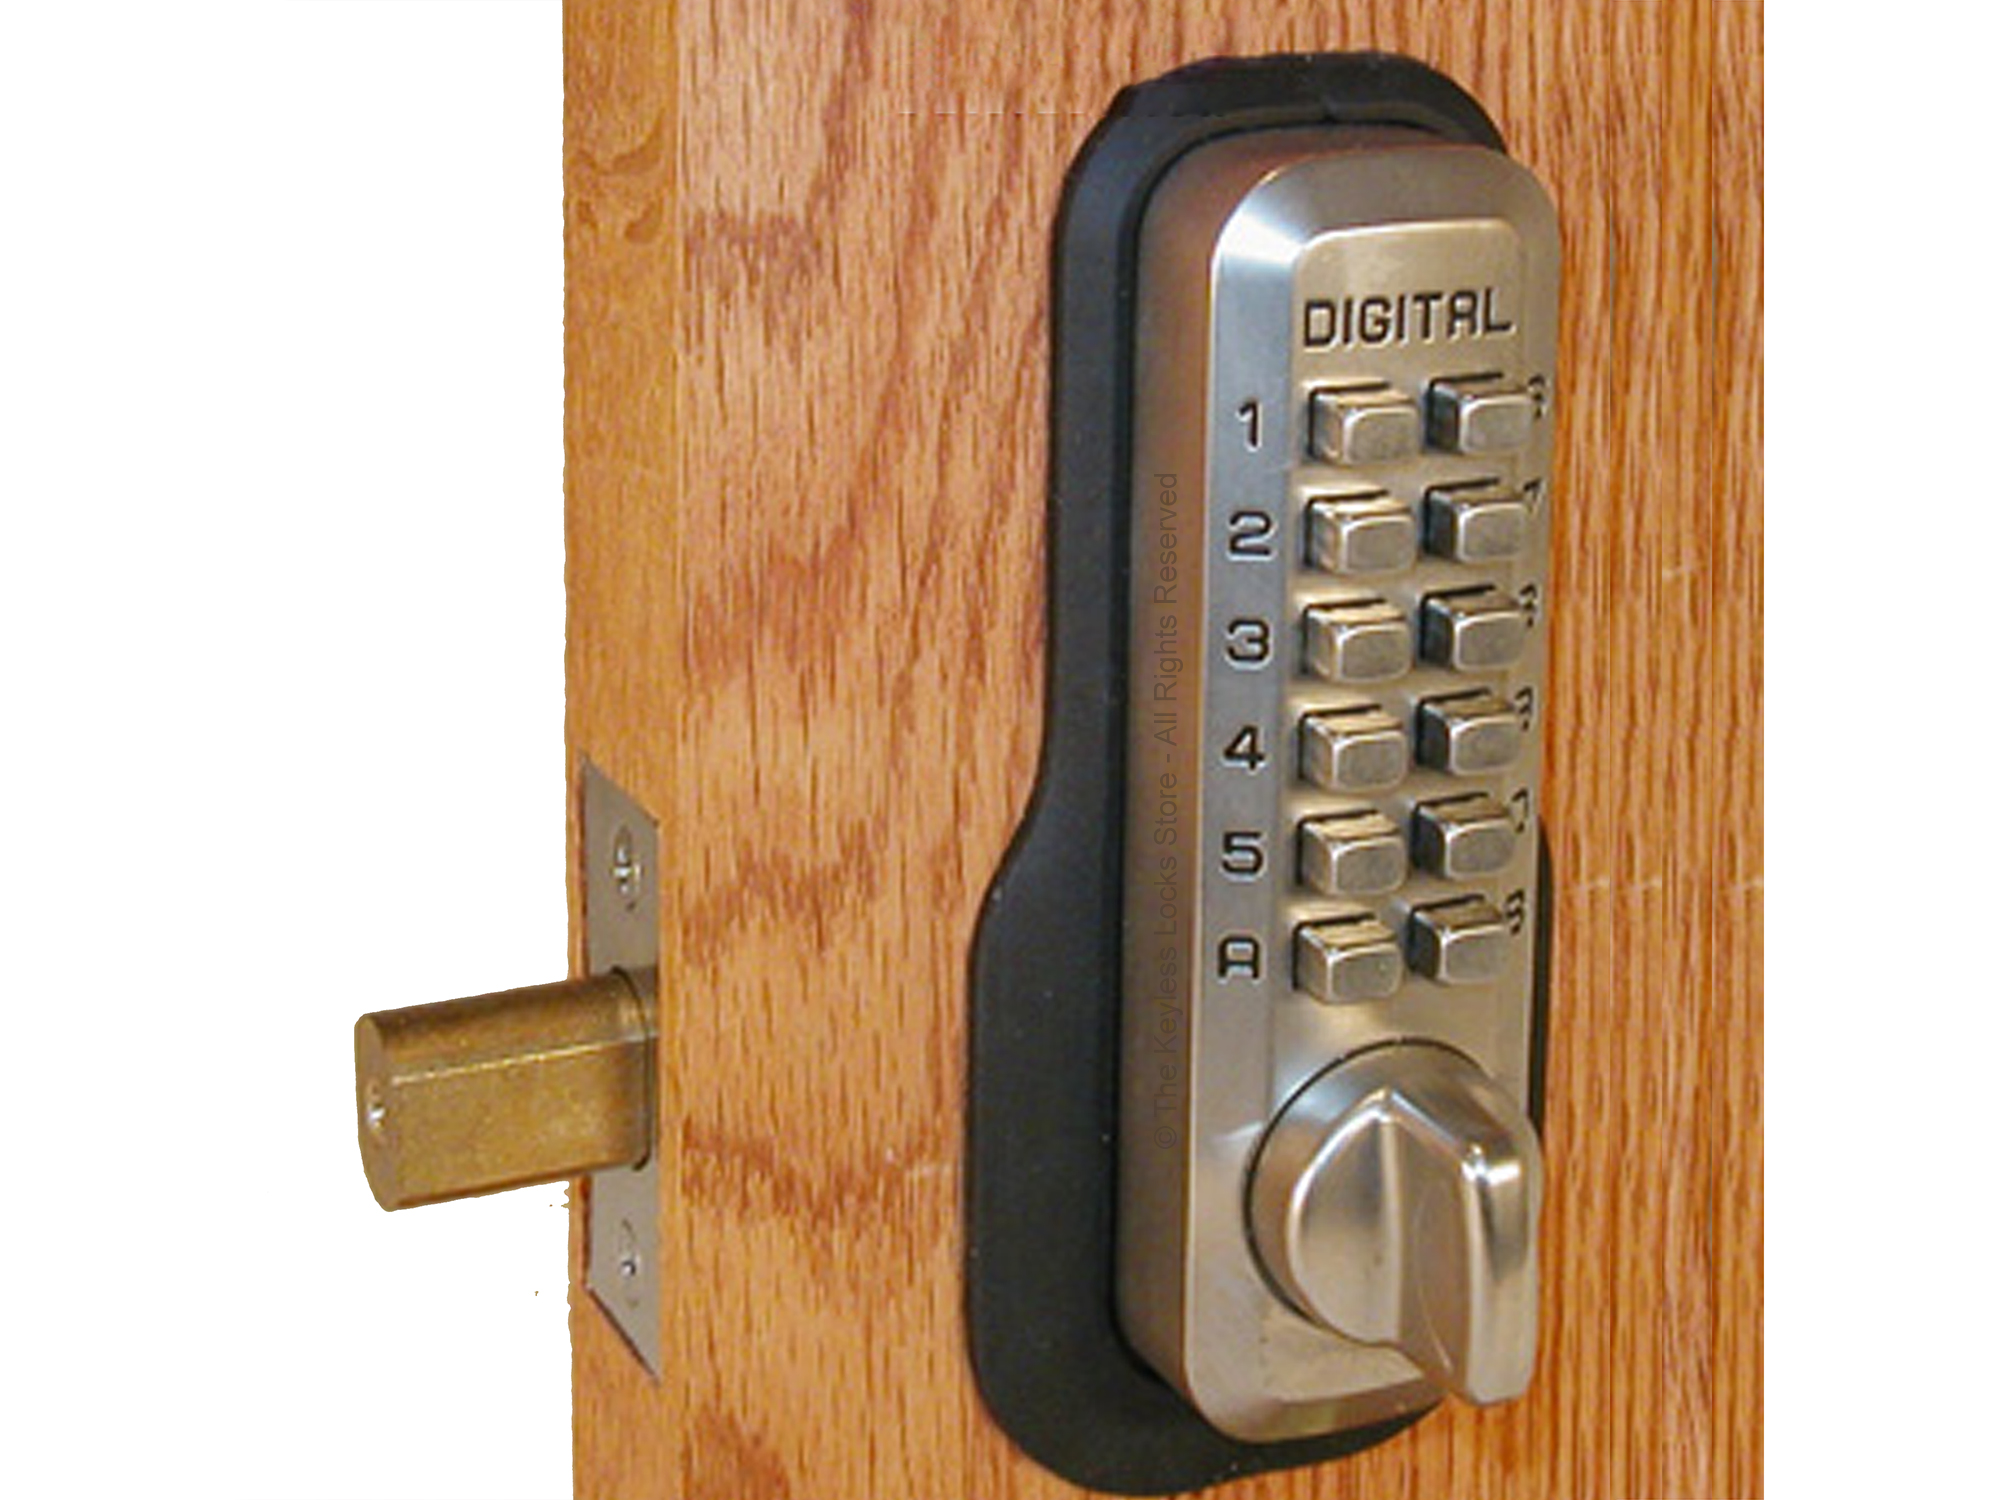 Lockey M210 Deadbolt Keypad Lock